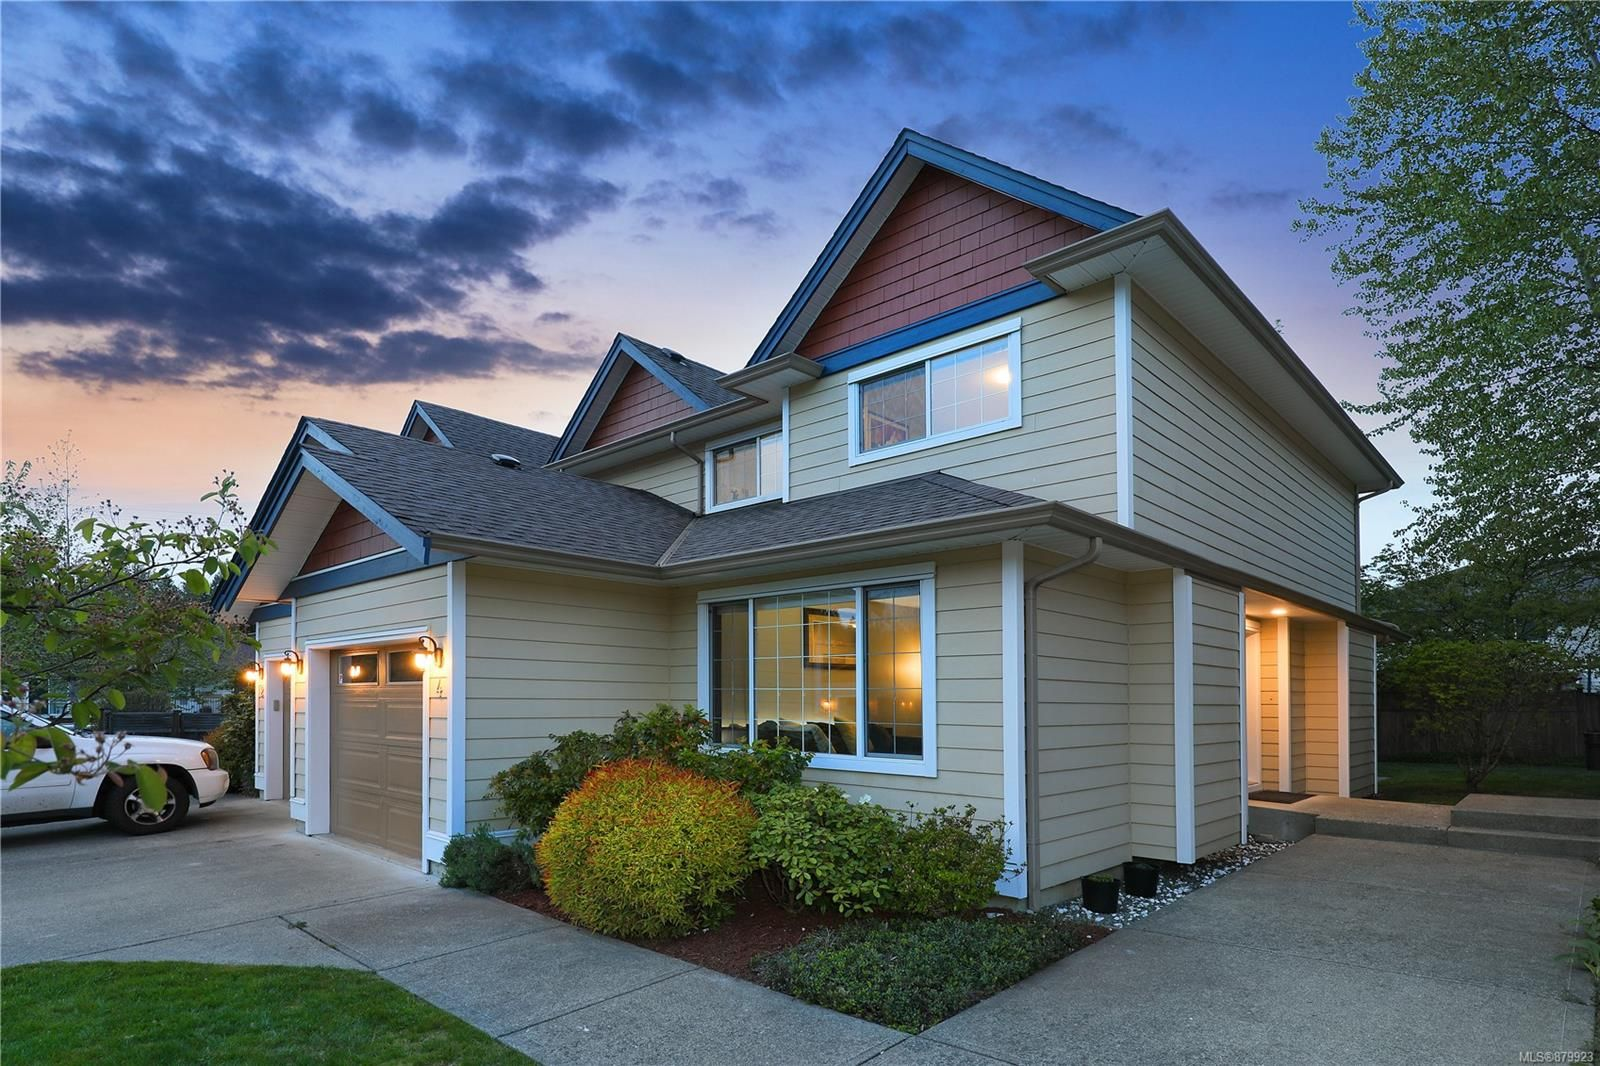 Main Photo: 4 2728 1st St in : CV Courtenay City Row/Townhouse for sale (Comox Valley)  : MLS®# 879923